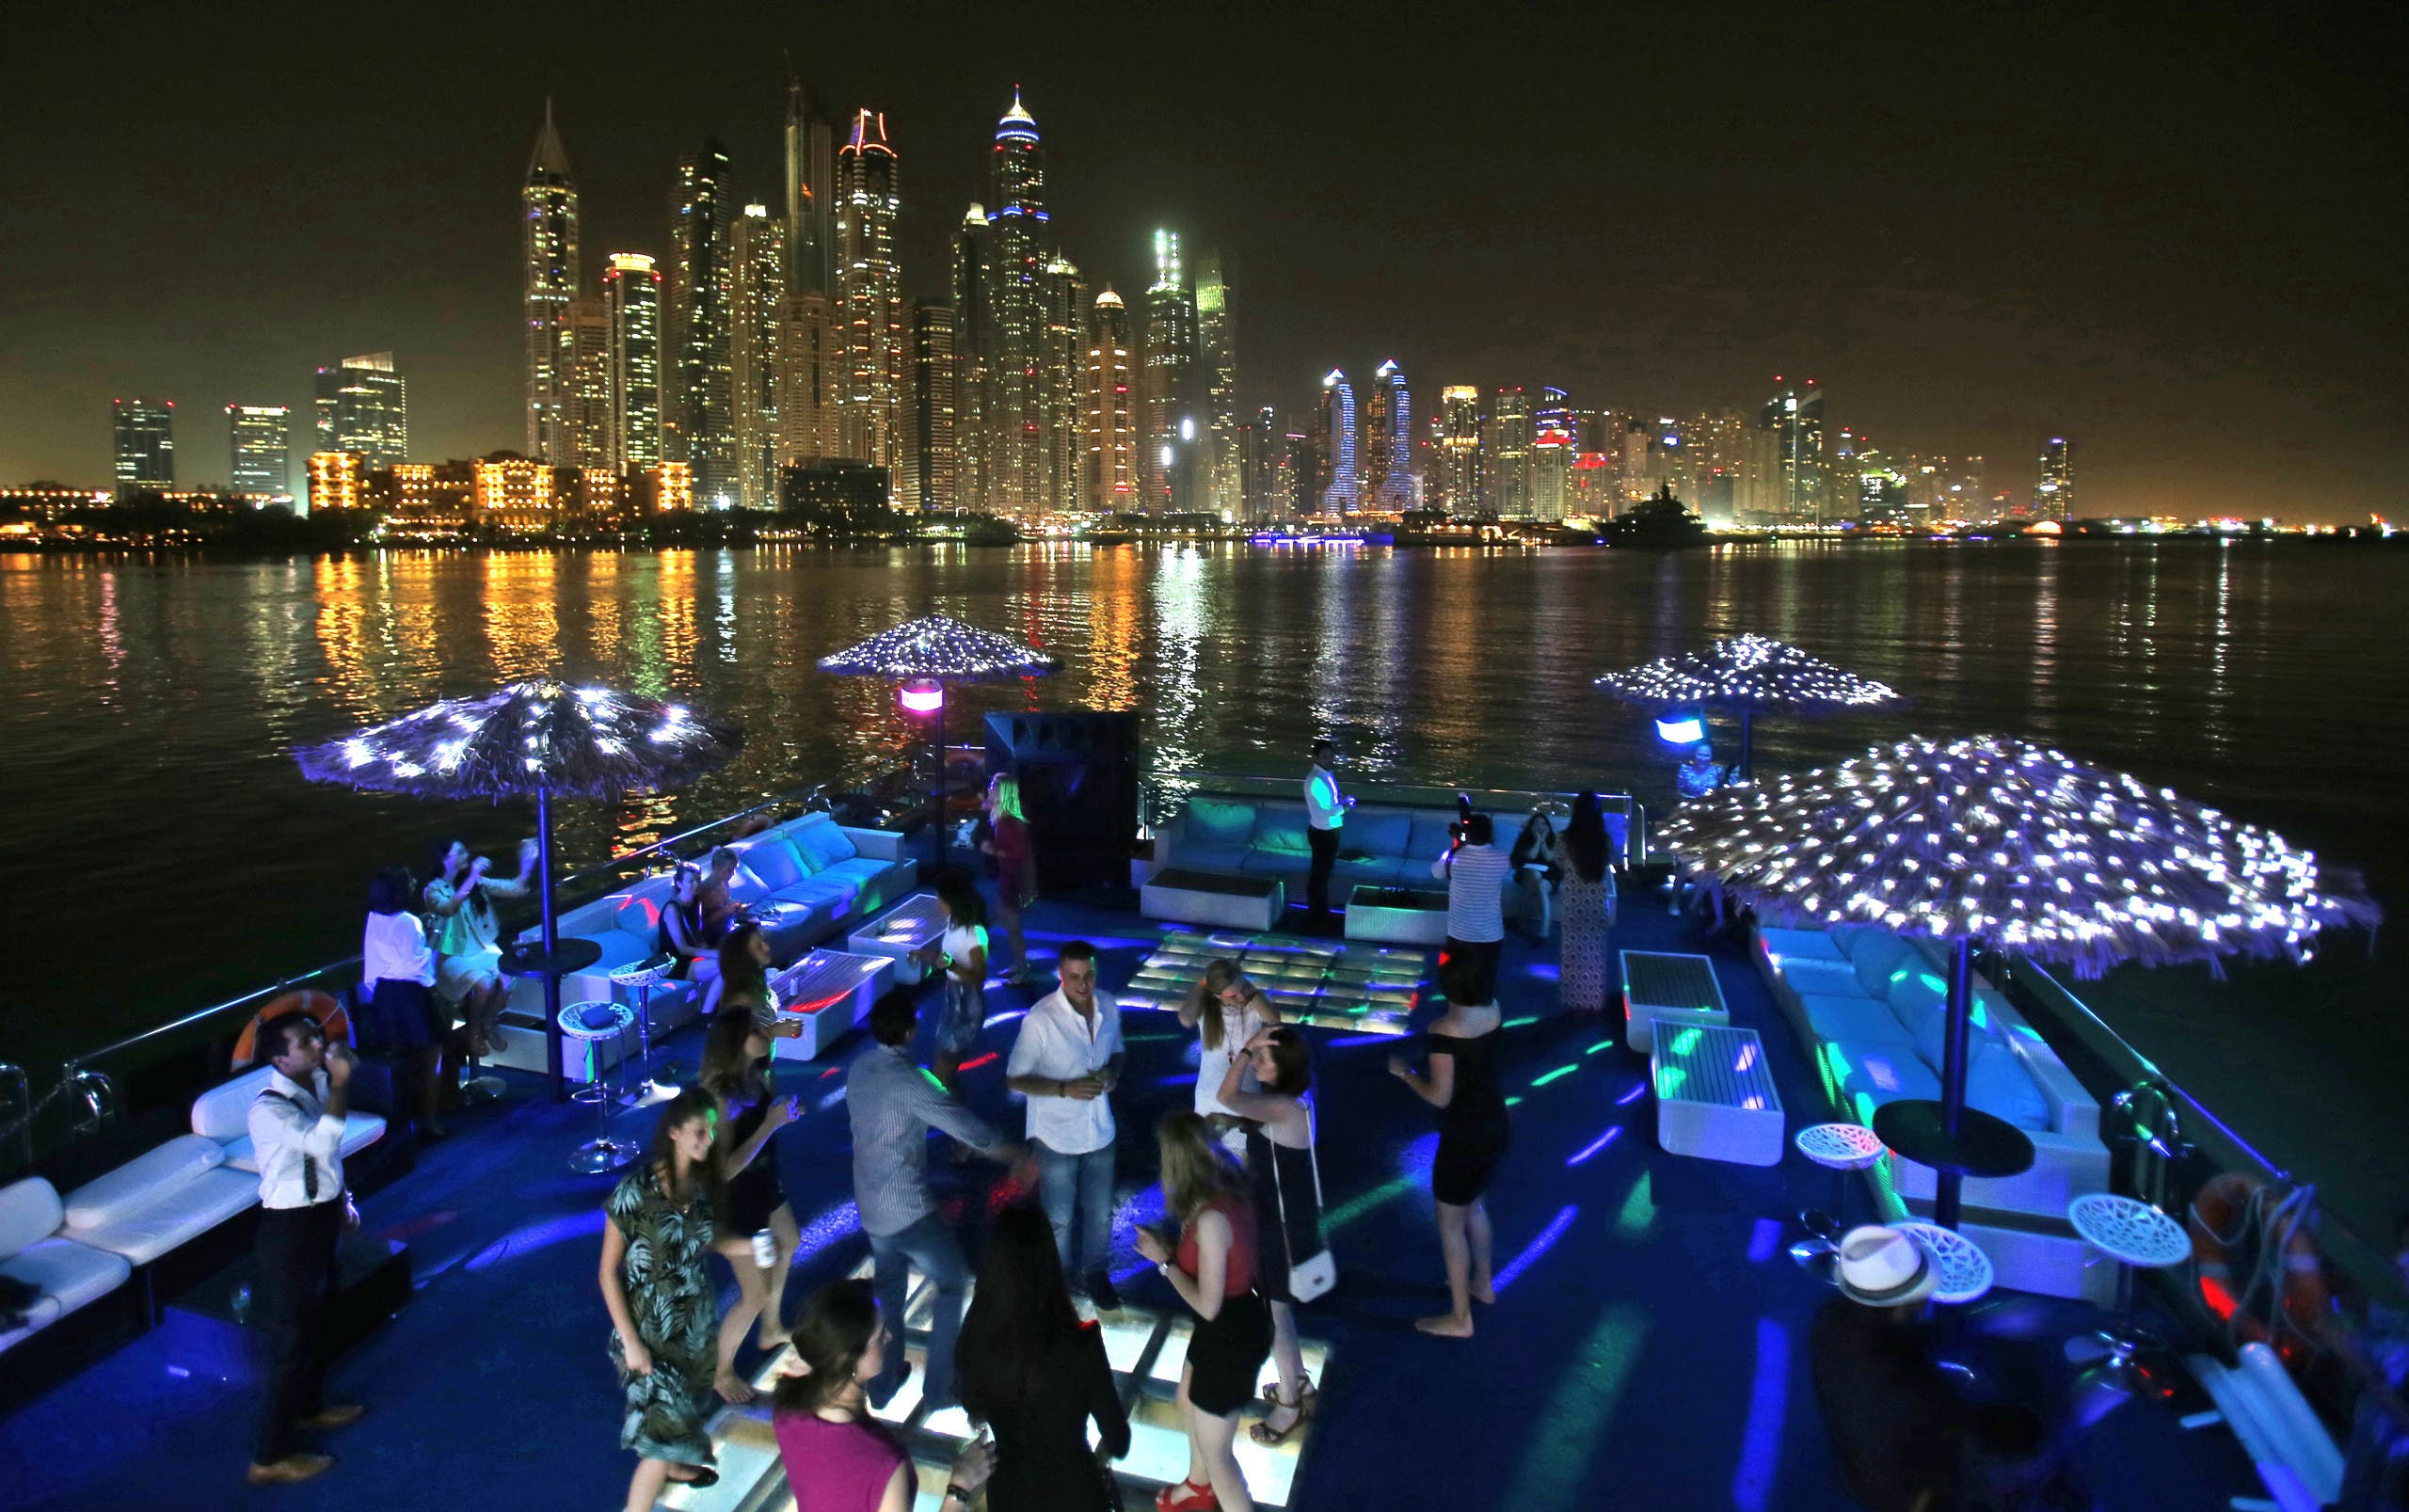 Guests dance during a private party opposite the skyline of the Marina Waterfront in Dubai, United Arab Emirates. (File photo: AP)